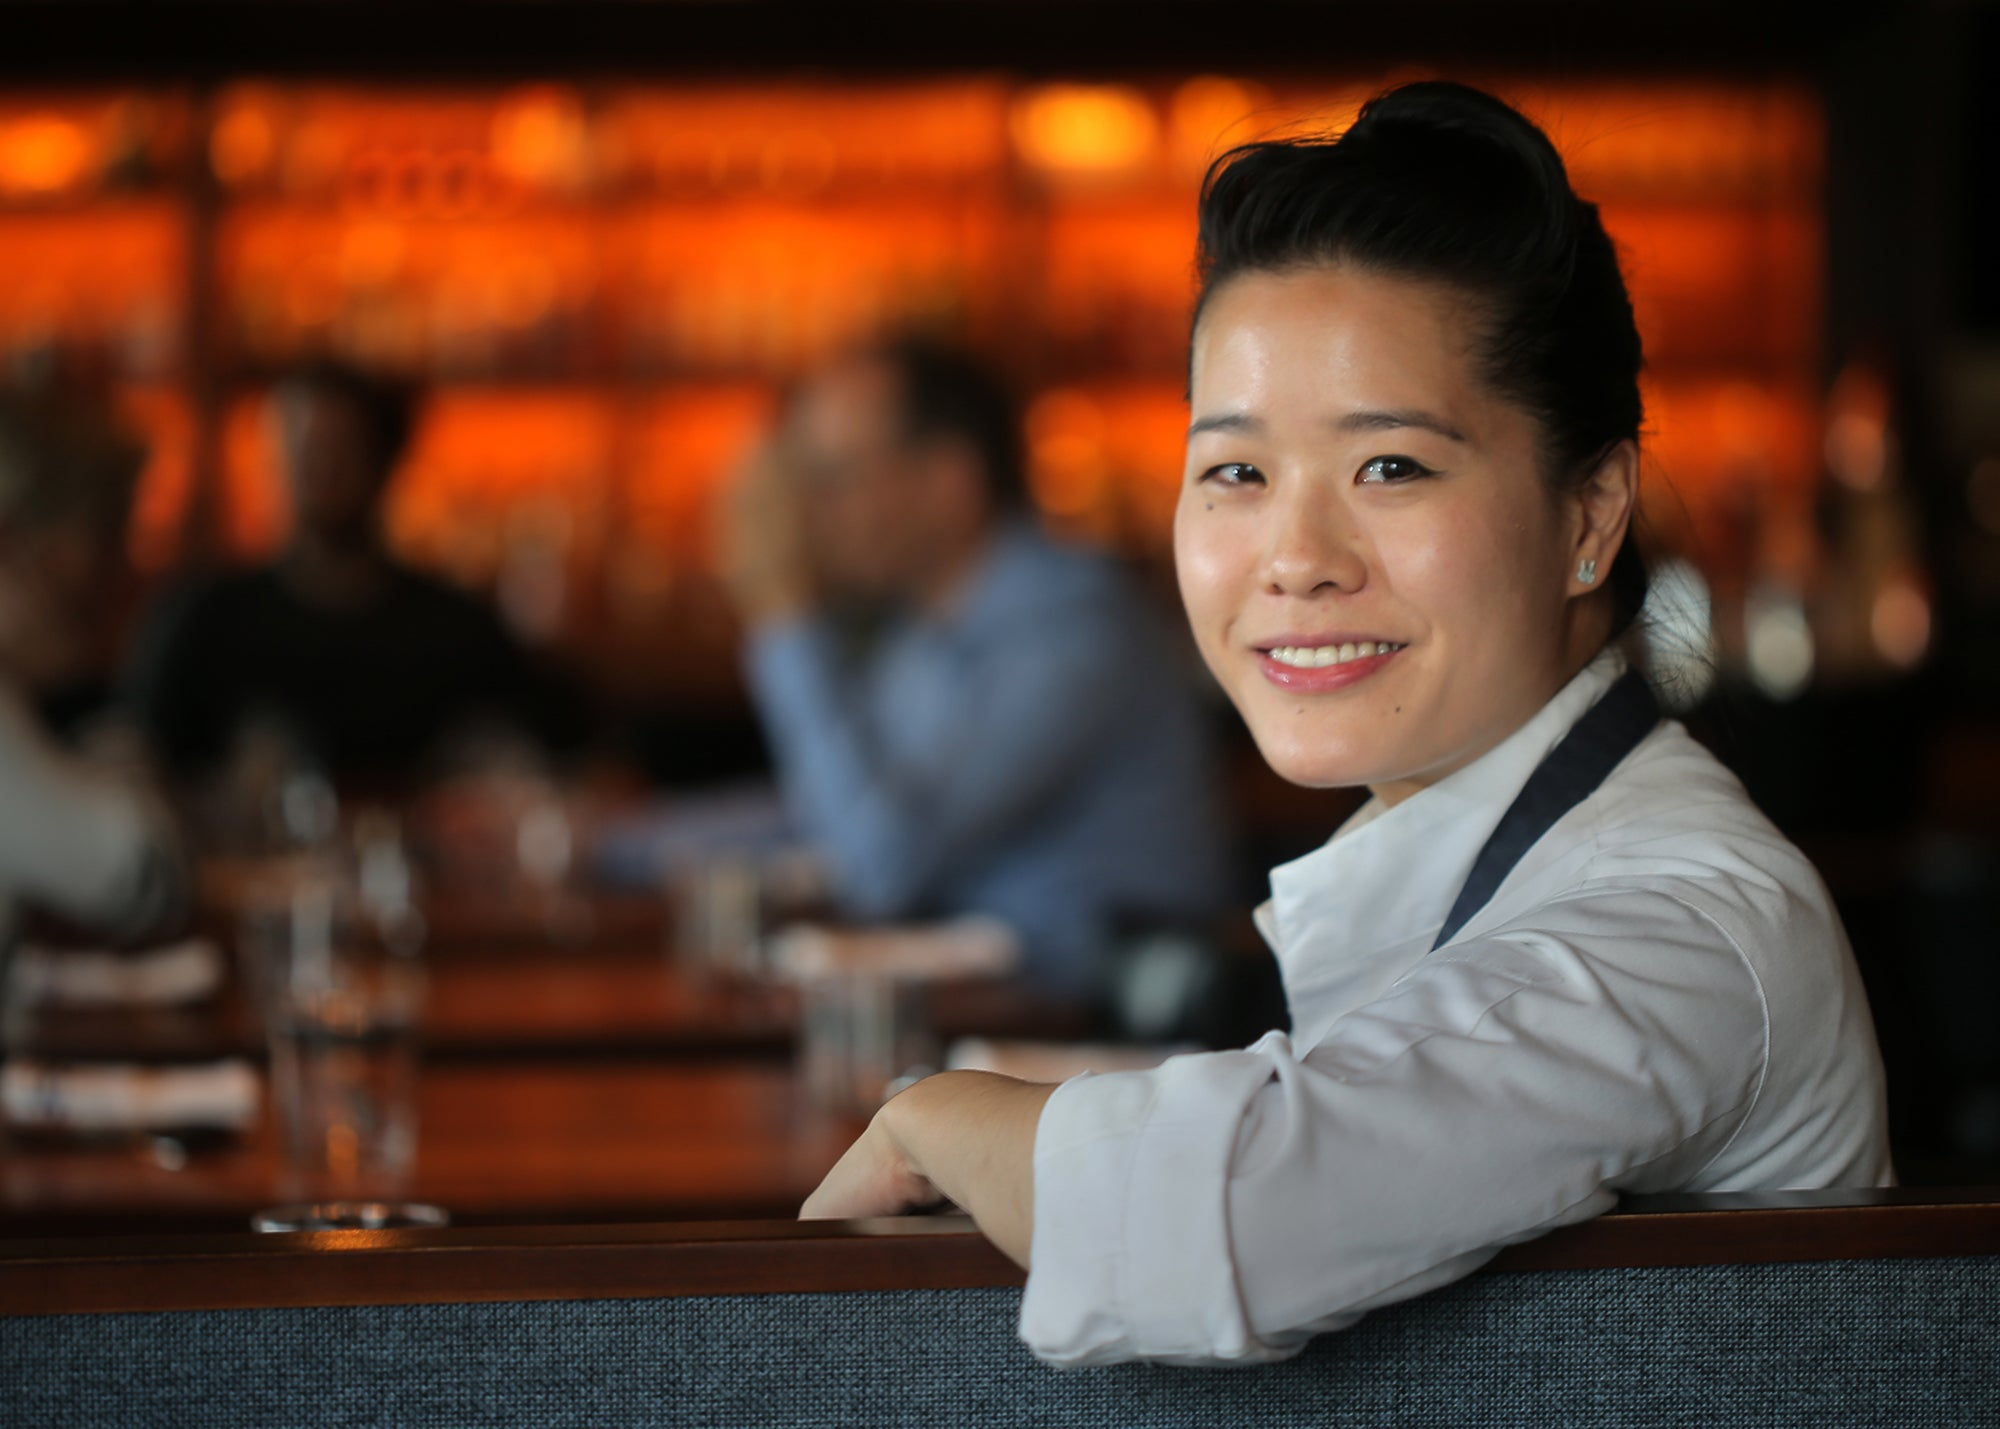 Chef/owner Tracy Chang at Pagu in Central Square